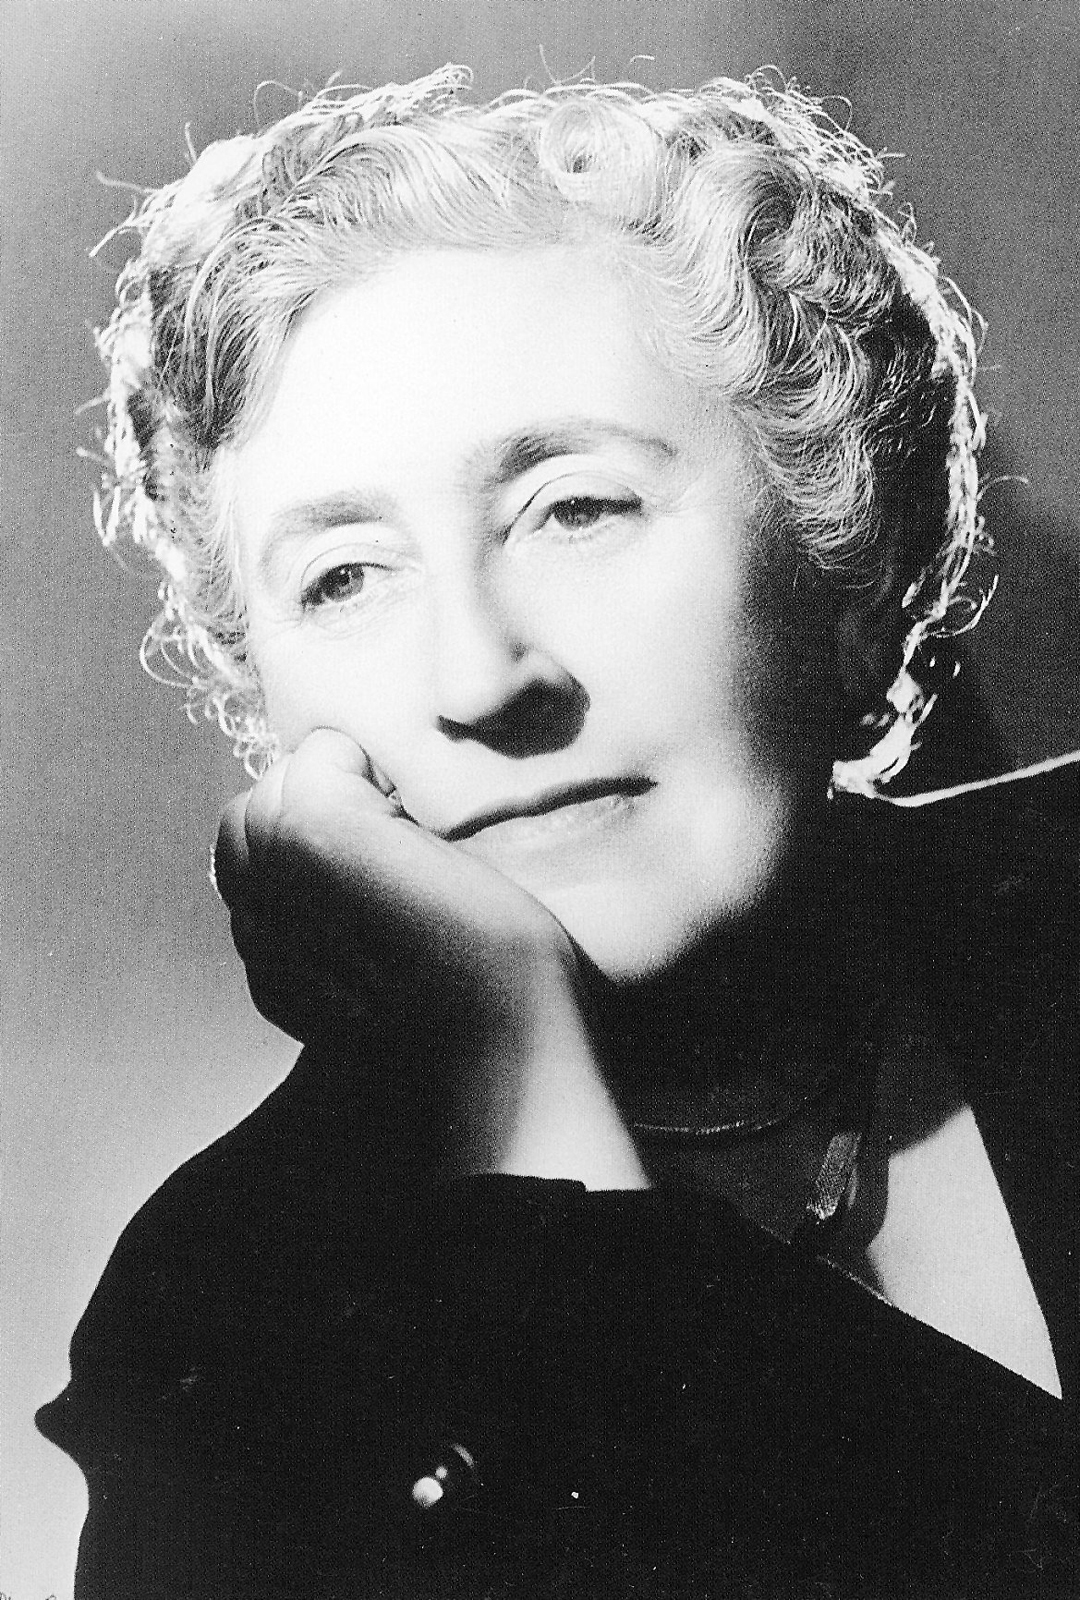 Agatha Christie, Queen of Crime, born in Torquay